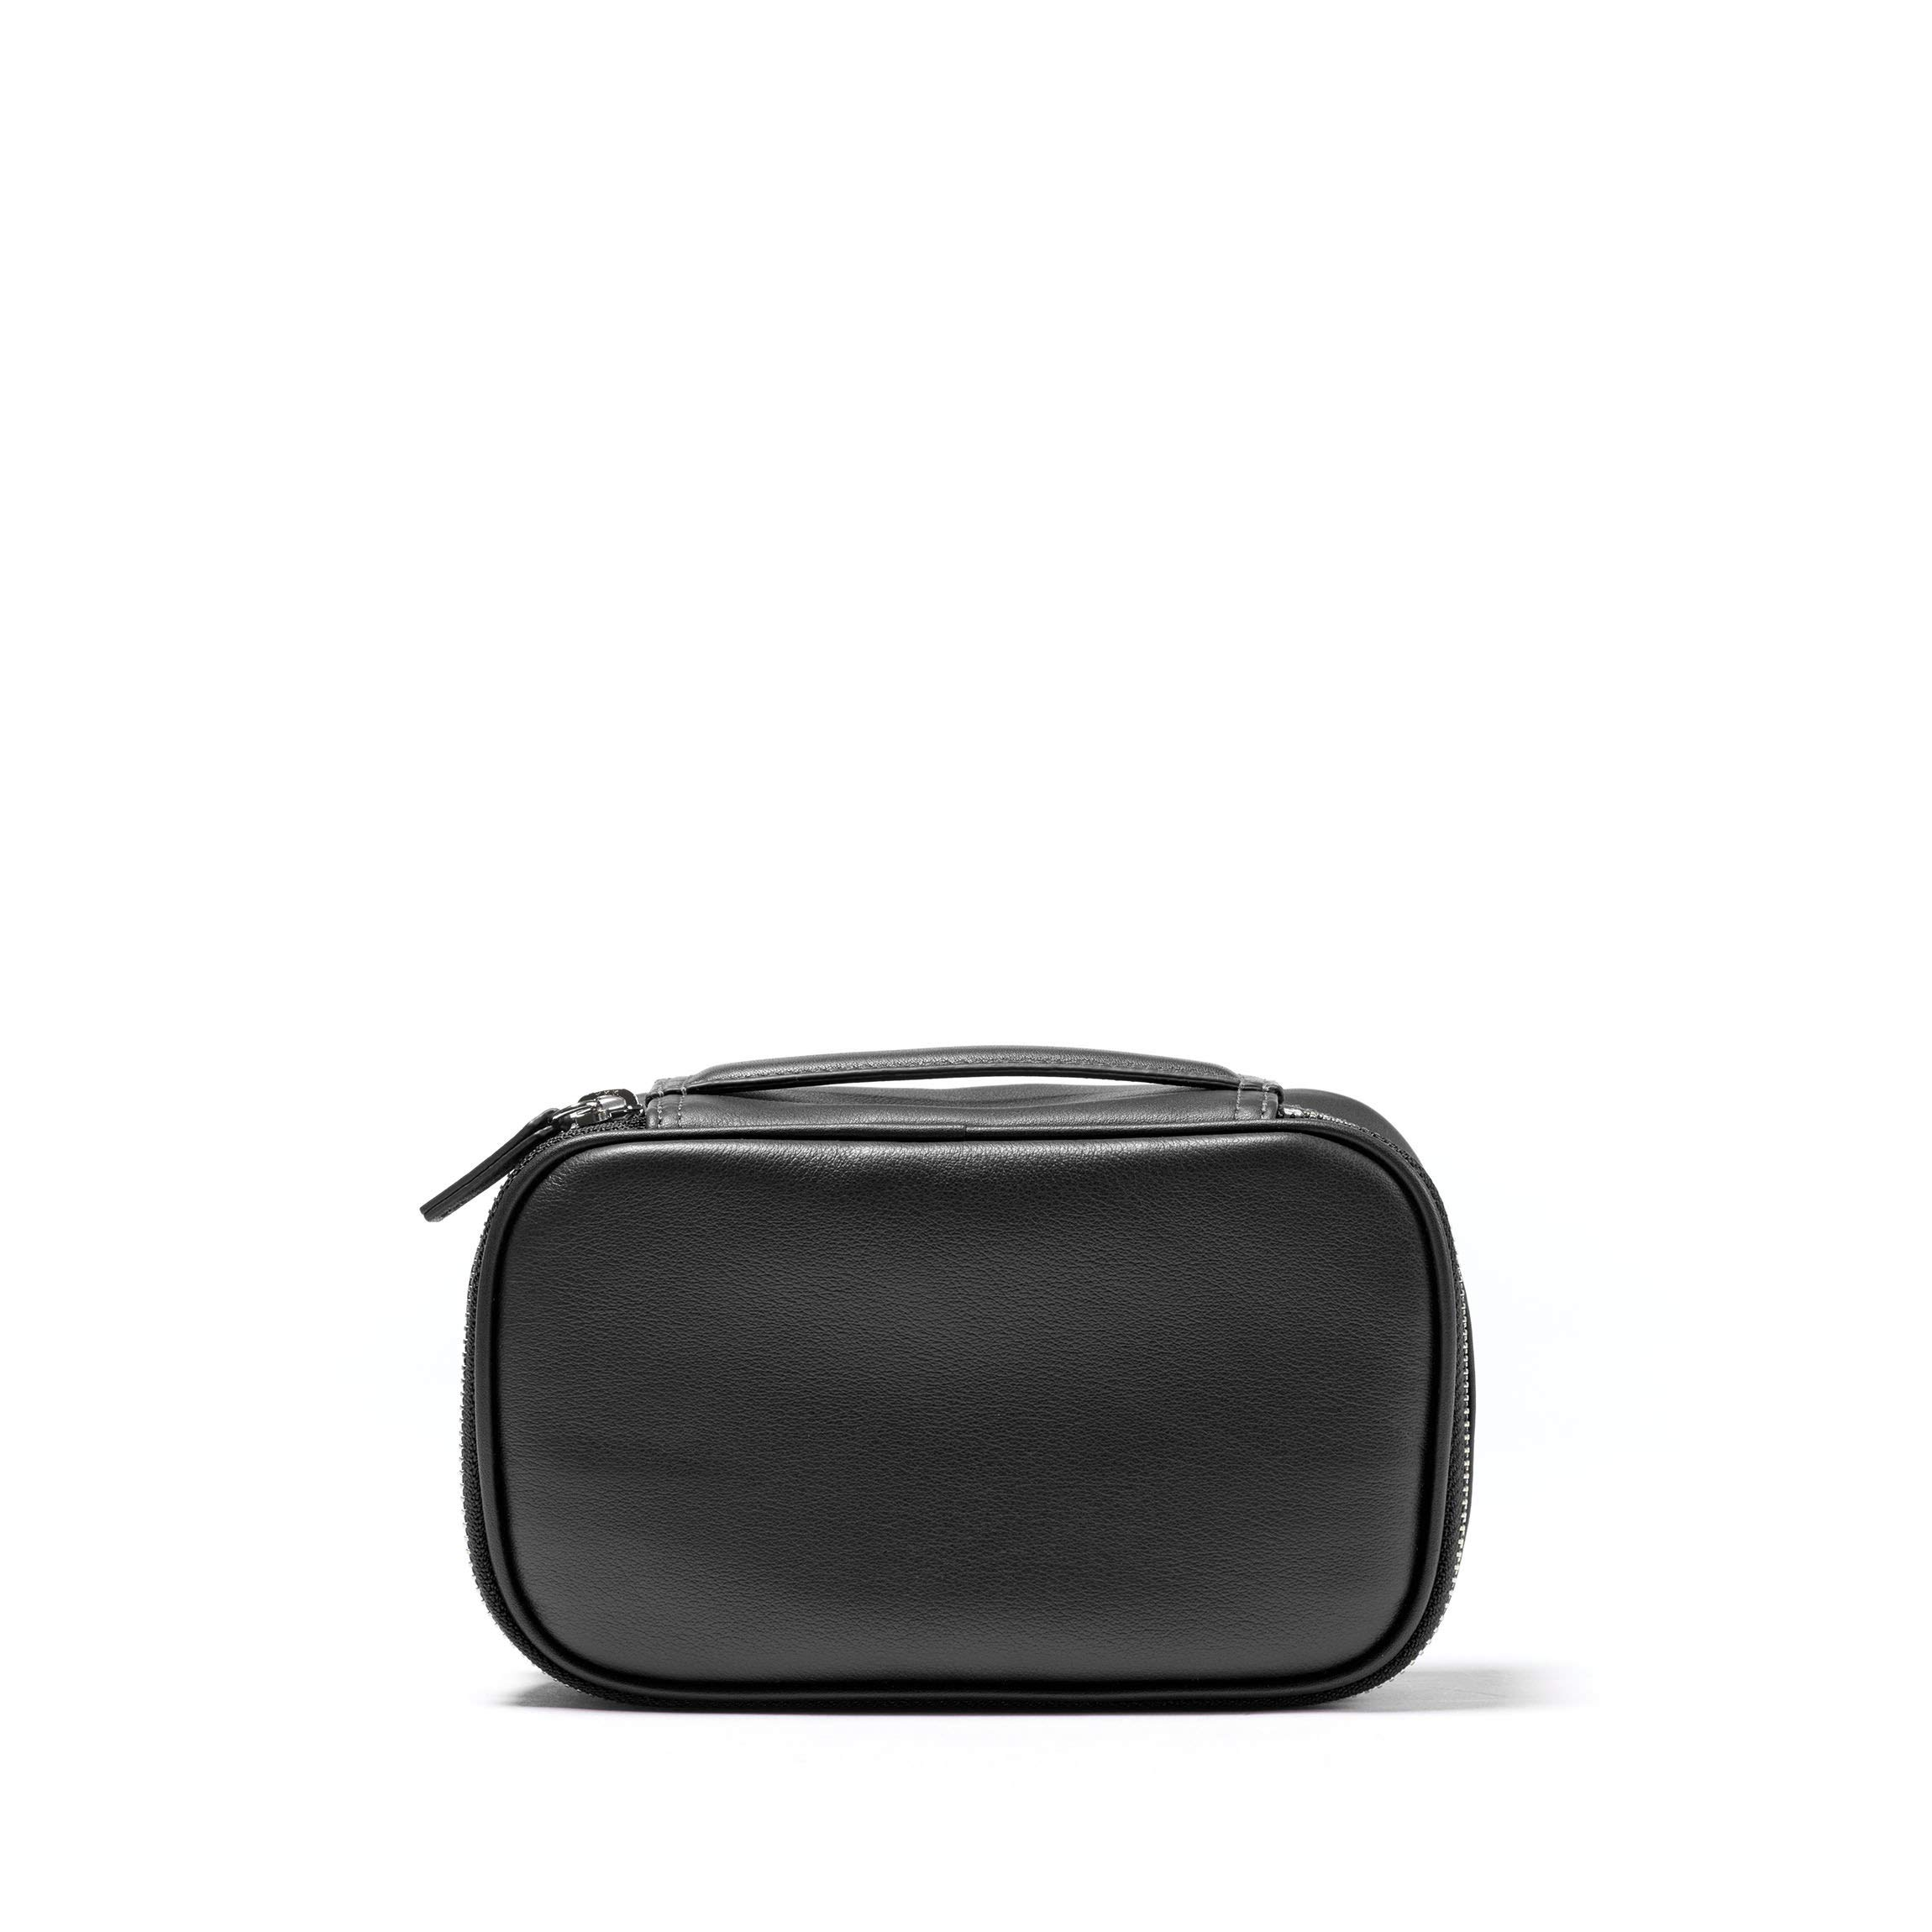 Leatherology Small Travel Organizer - Full Grain Leather Leather - Black Onyx (black)